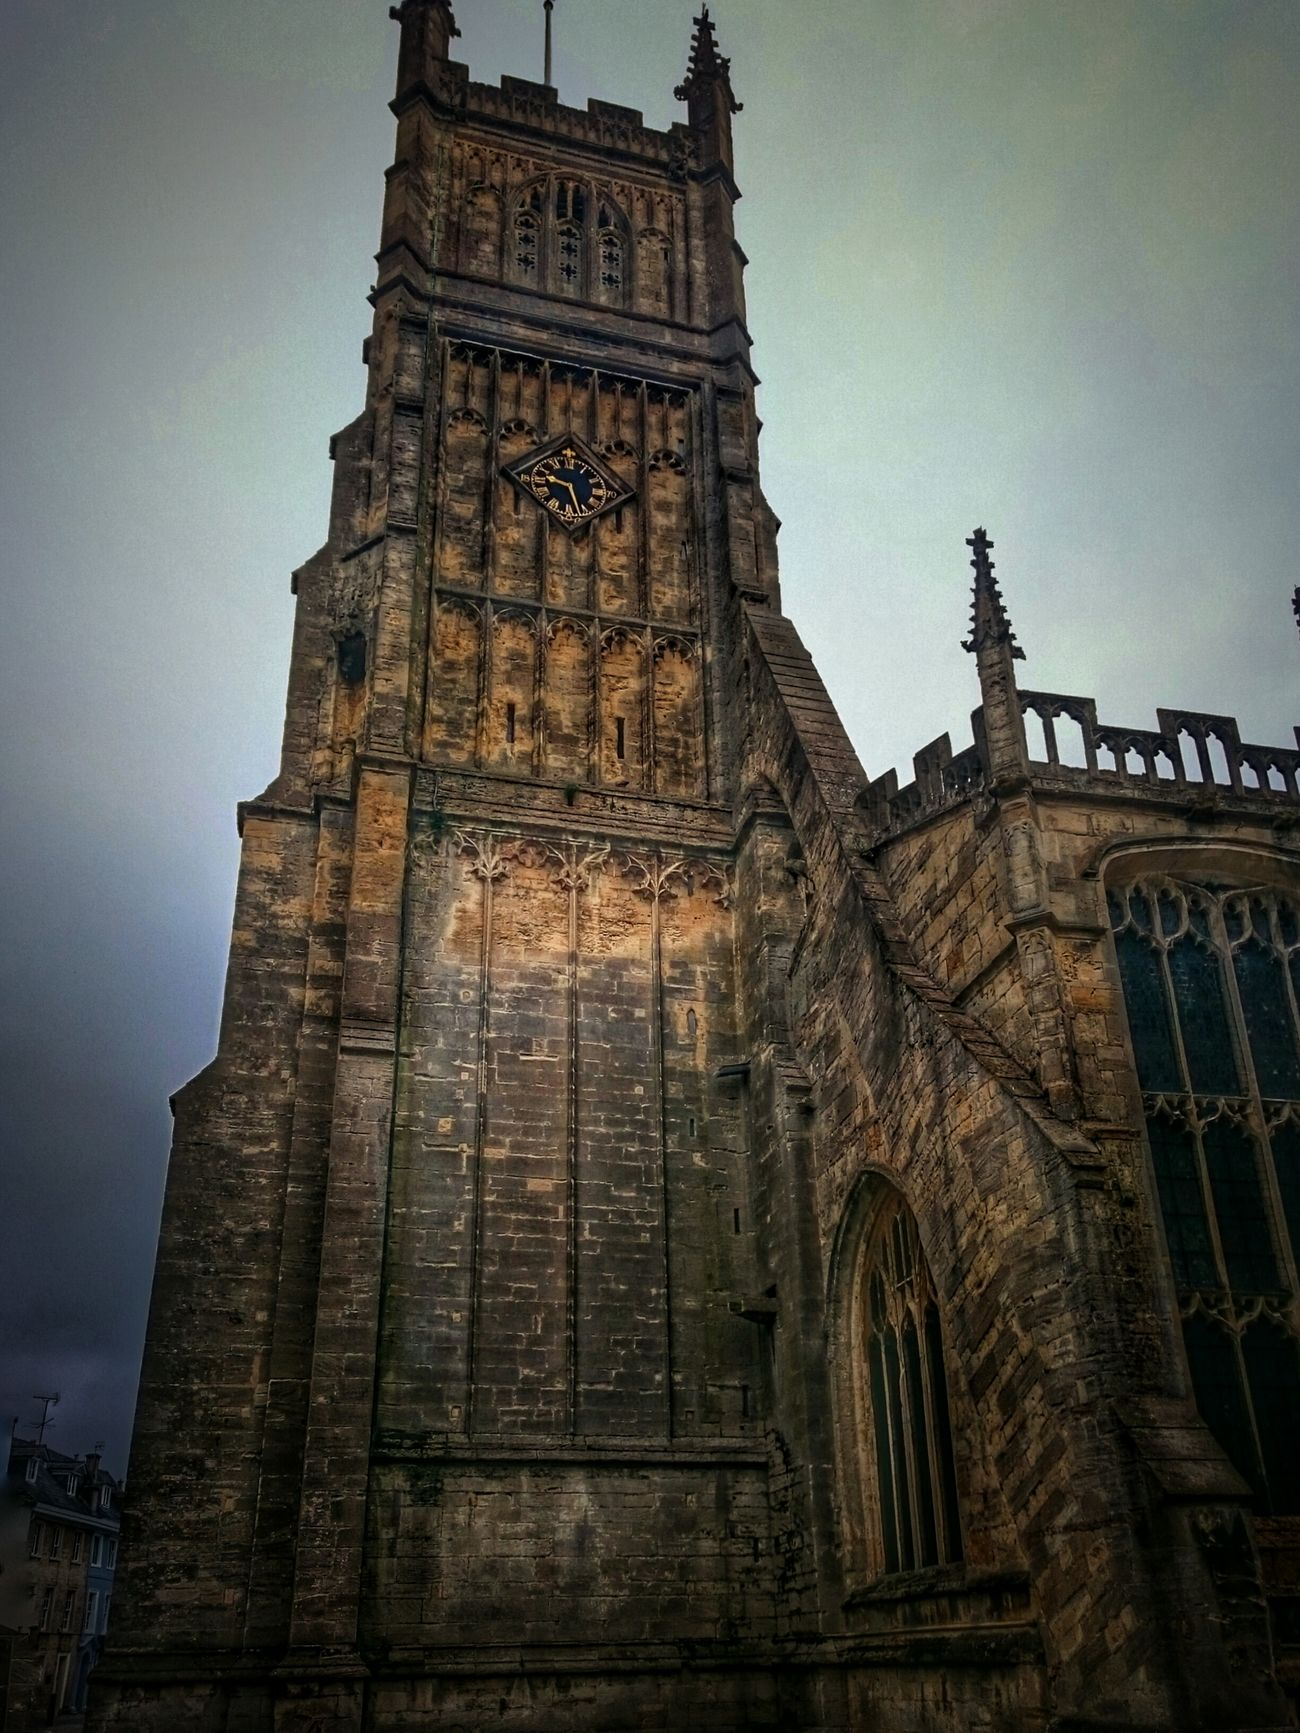 Churches Cirencester Architecture Architecturelovers Architectural Detail Taking Photos Hdr_lovers Hdrphotography Hdr_Collection Street Photography Old But Awesome Stonework Architectural Feature Hdr_gallery Church Tower